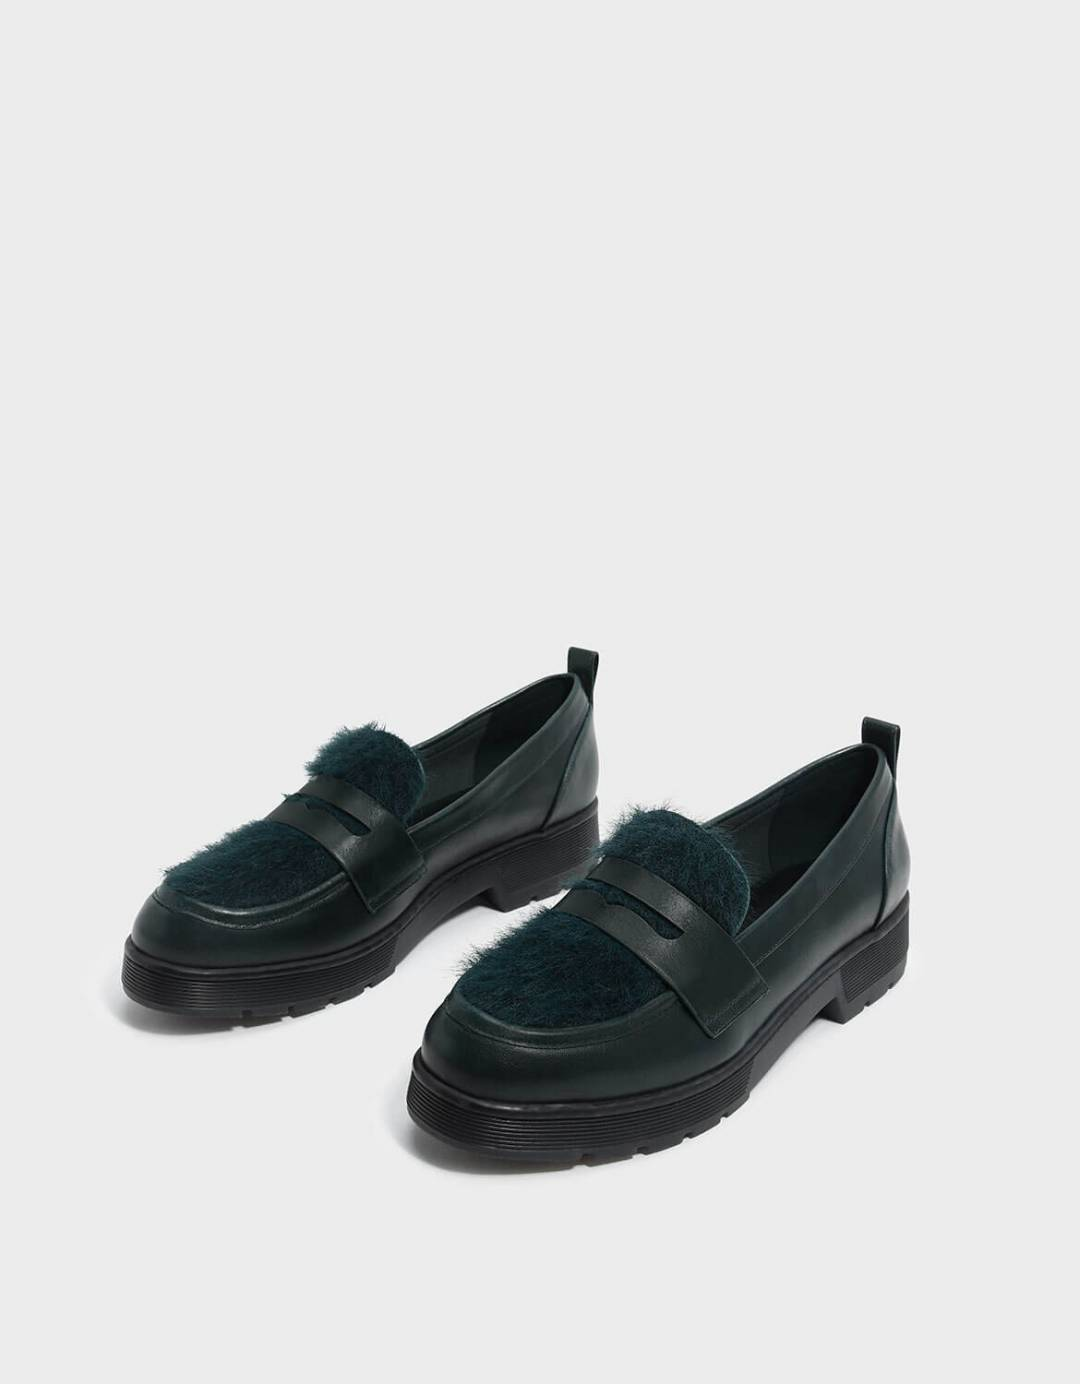 Furry Penny Loafers